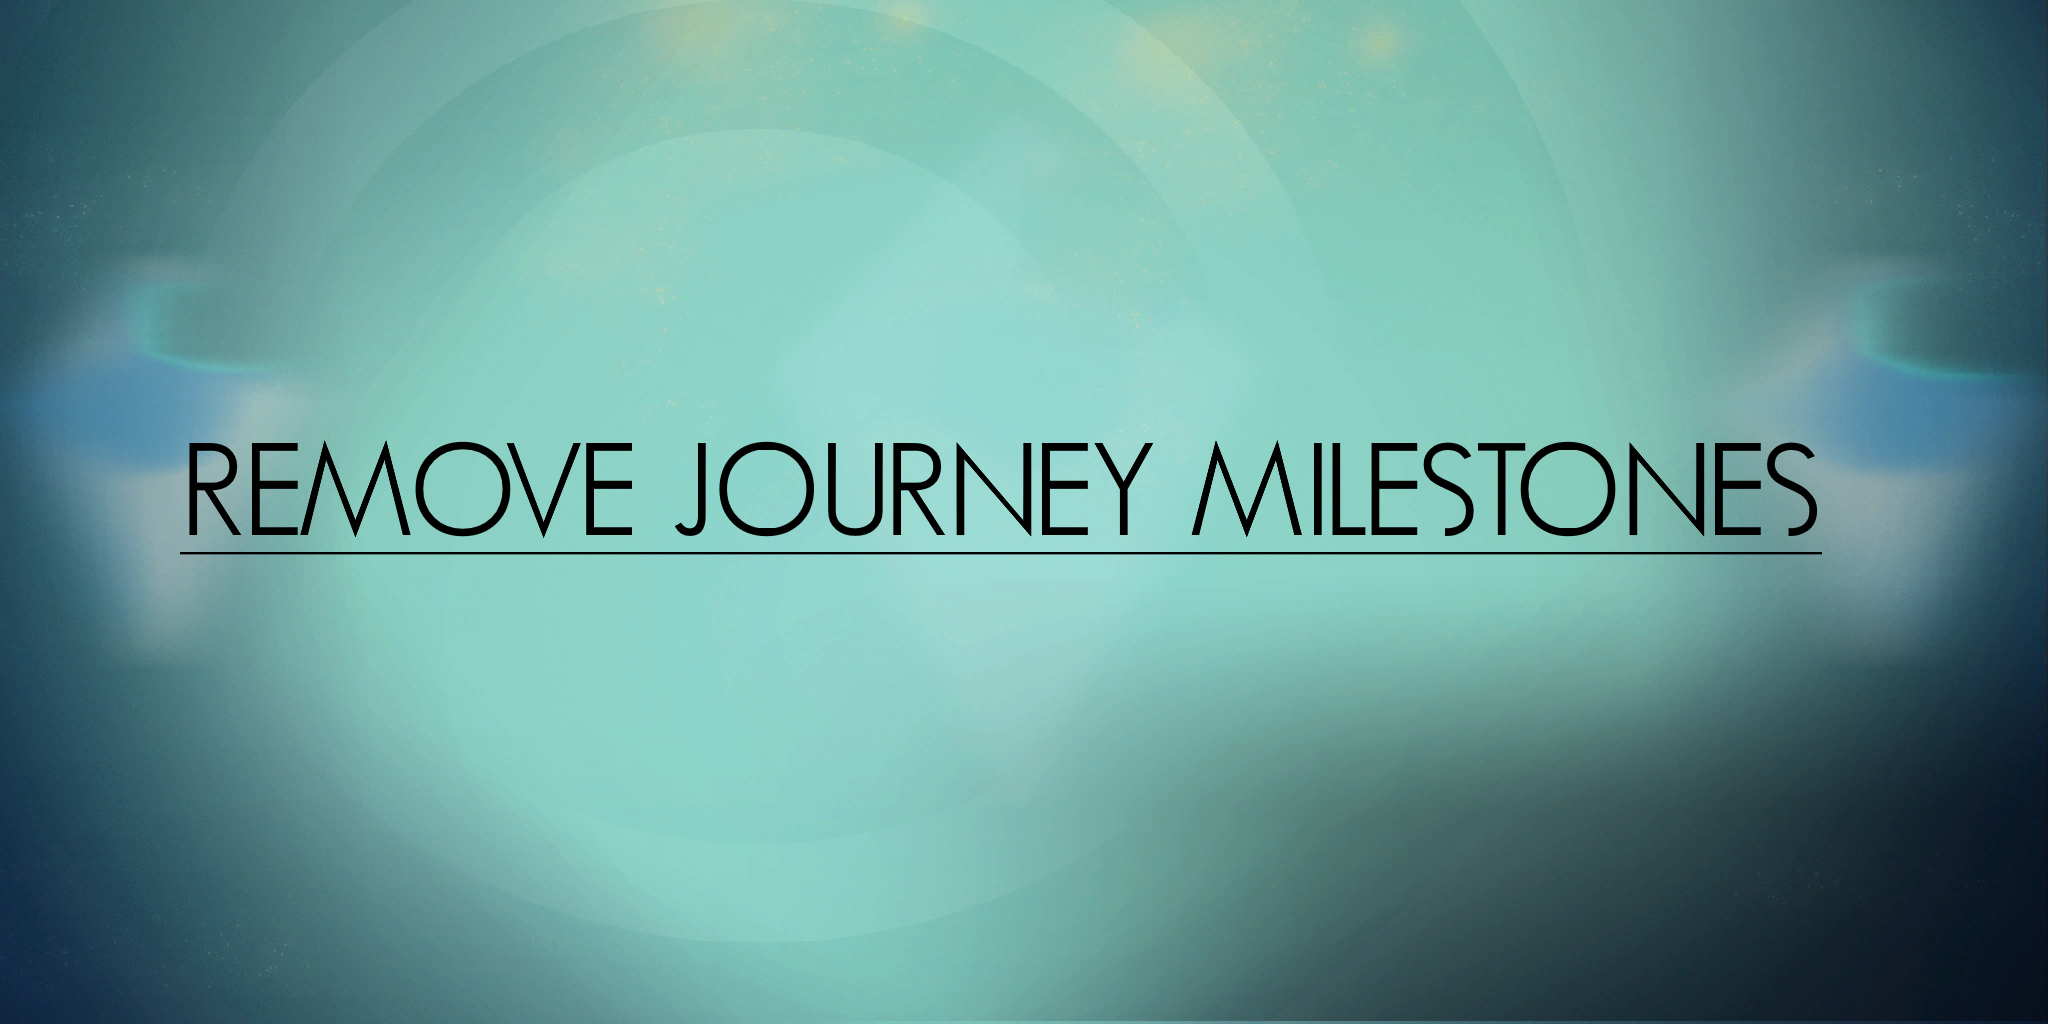 Remove Journey Milestones